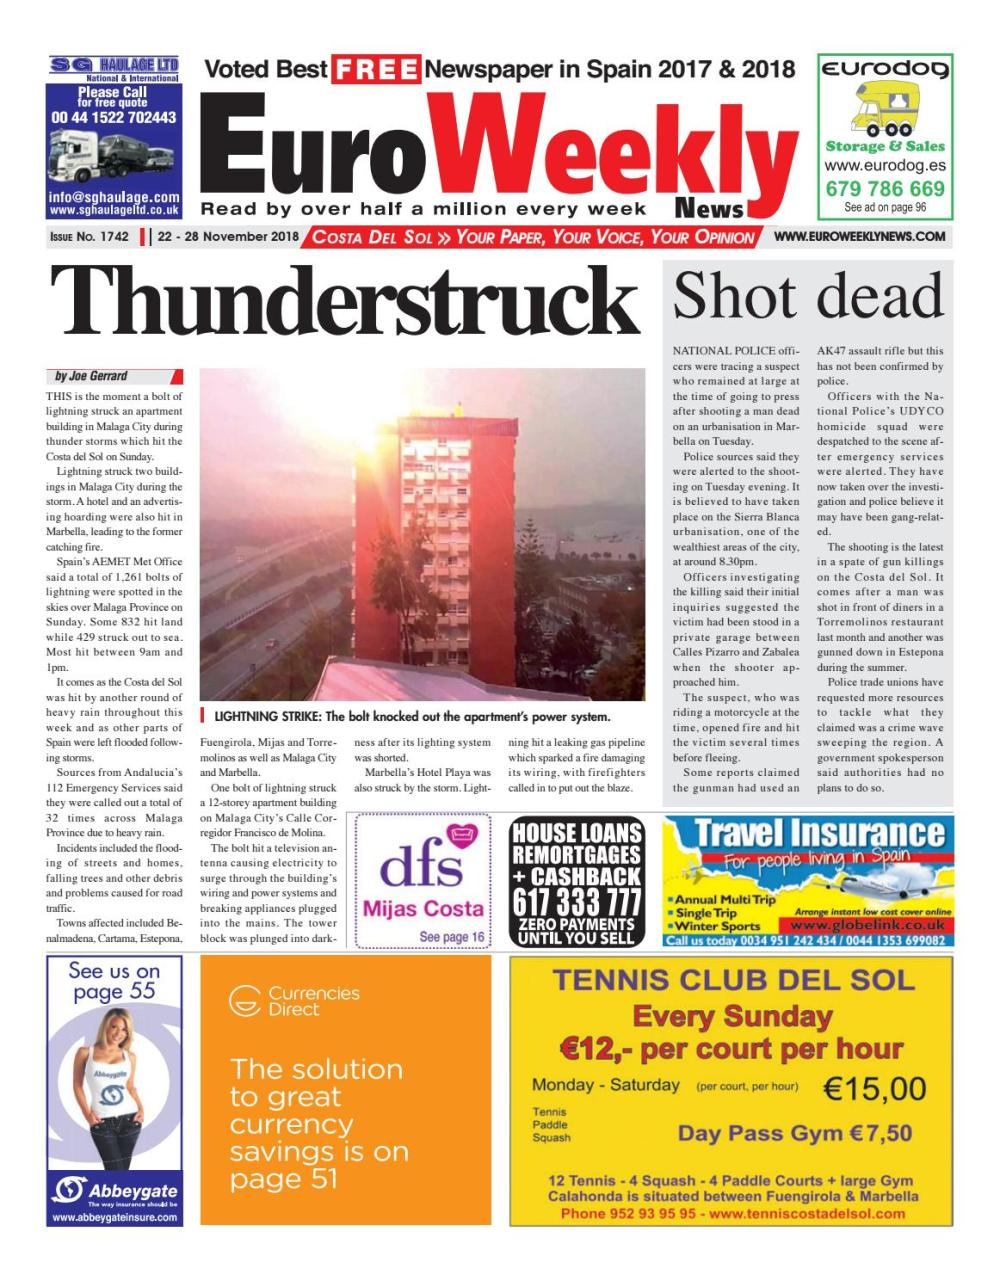 medium resolution of euro weekly news costa del sol 22 28 november 2018 issue 1742 by euro weekly news media s a issuu